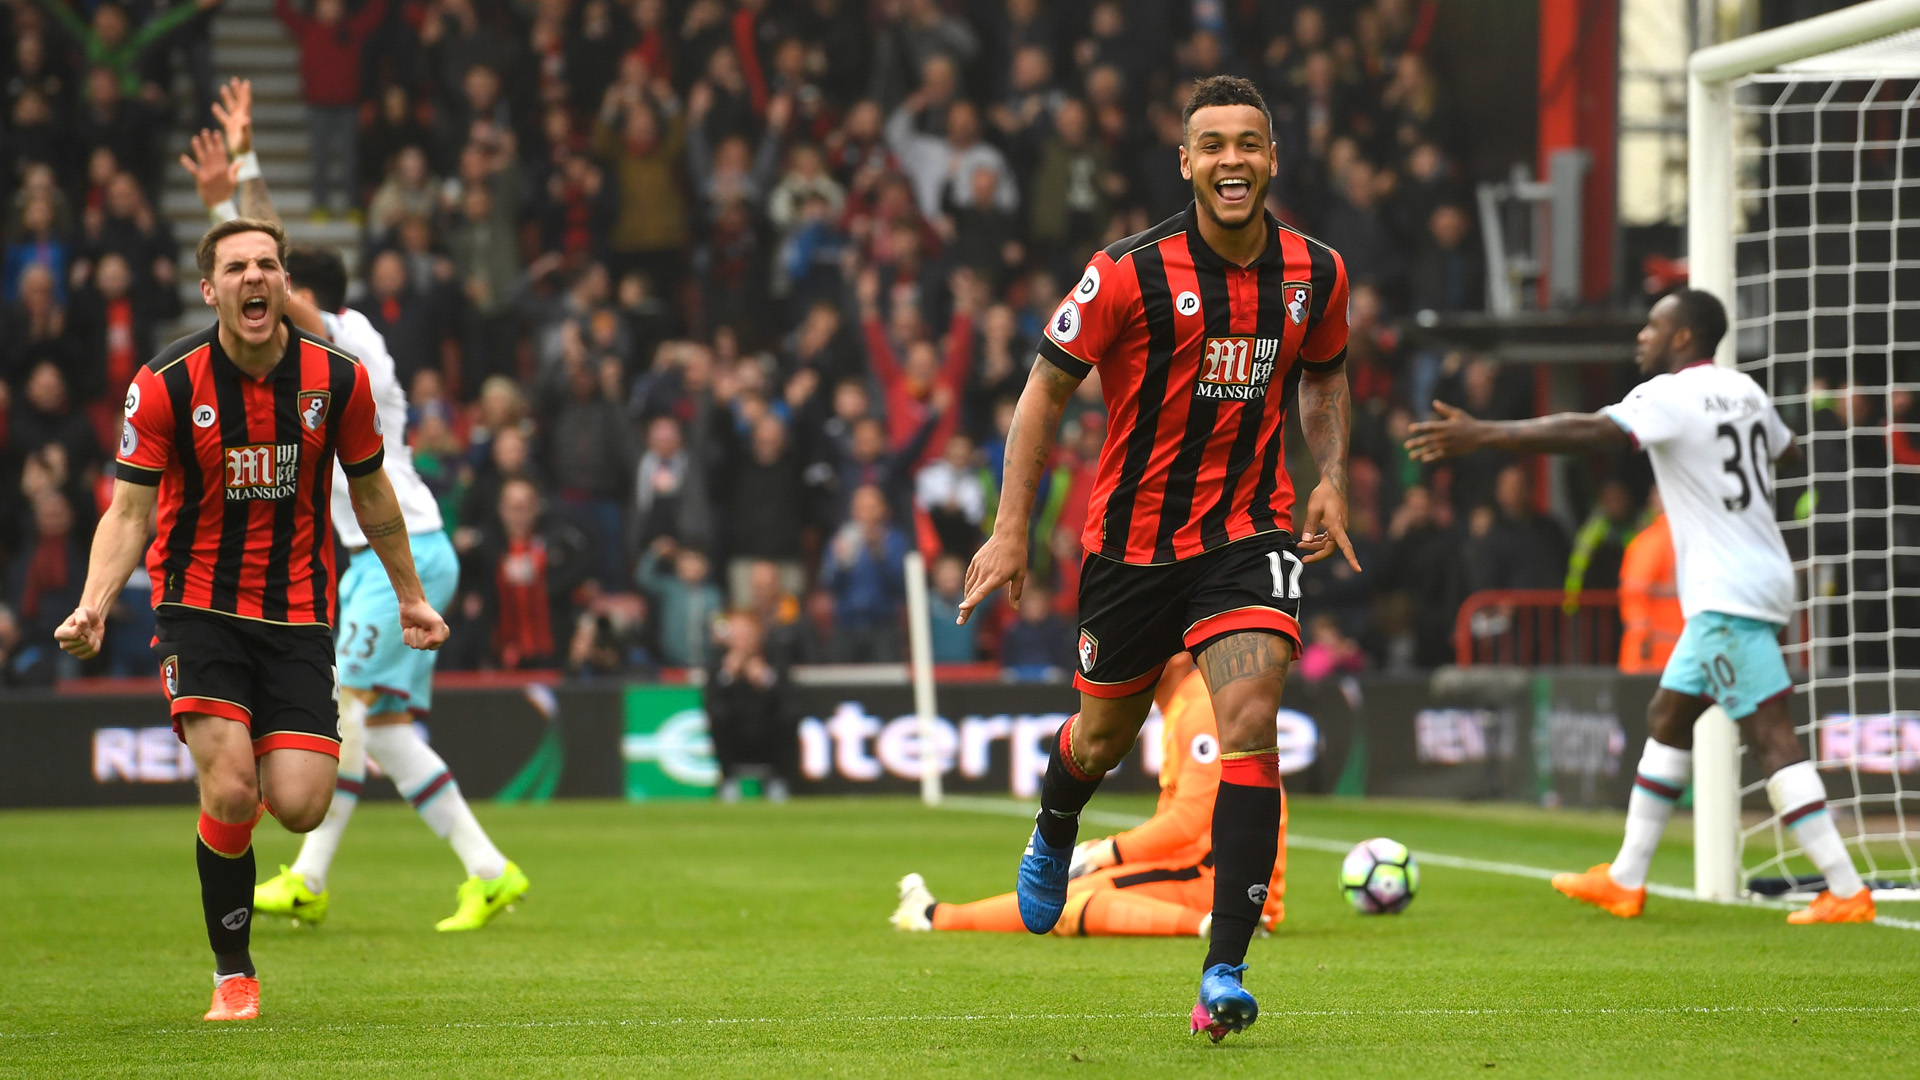 Afc Bournemouth 3-2 West Ham United Maç Özeti